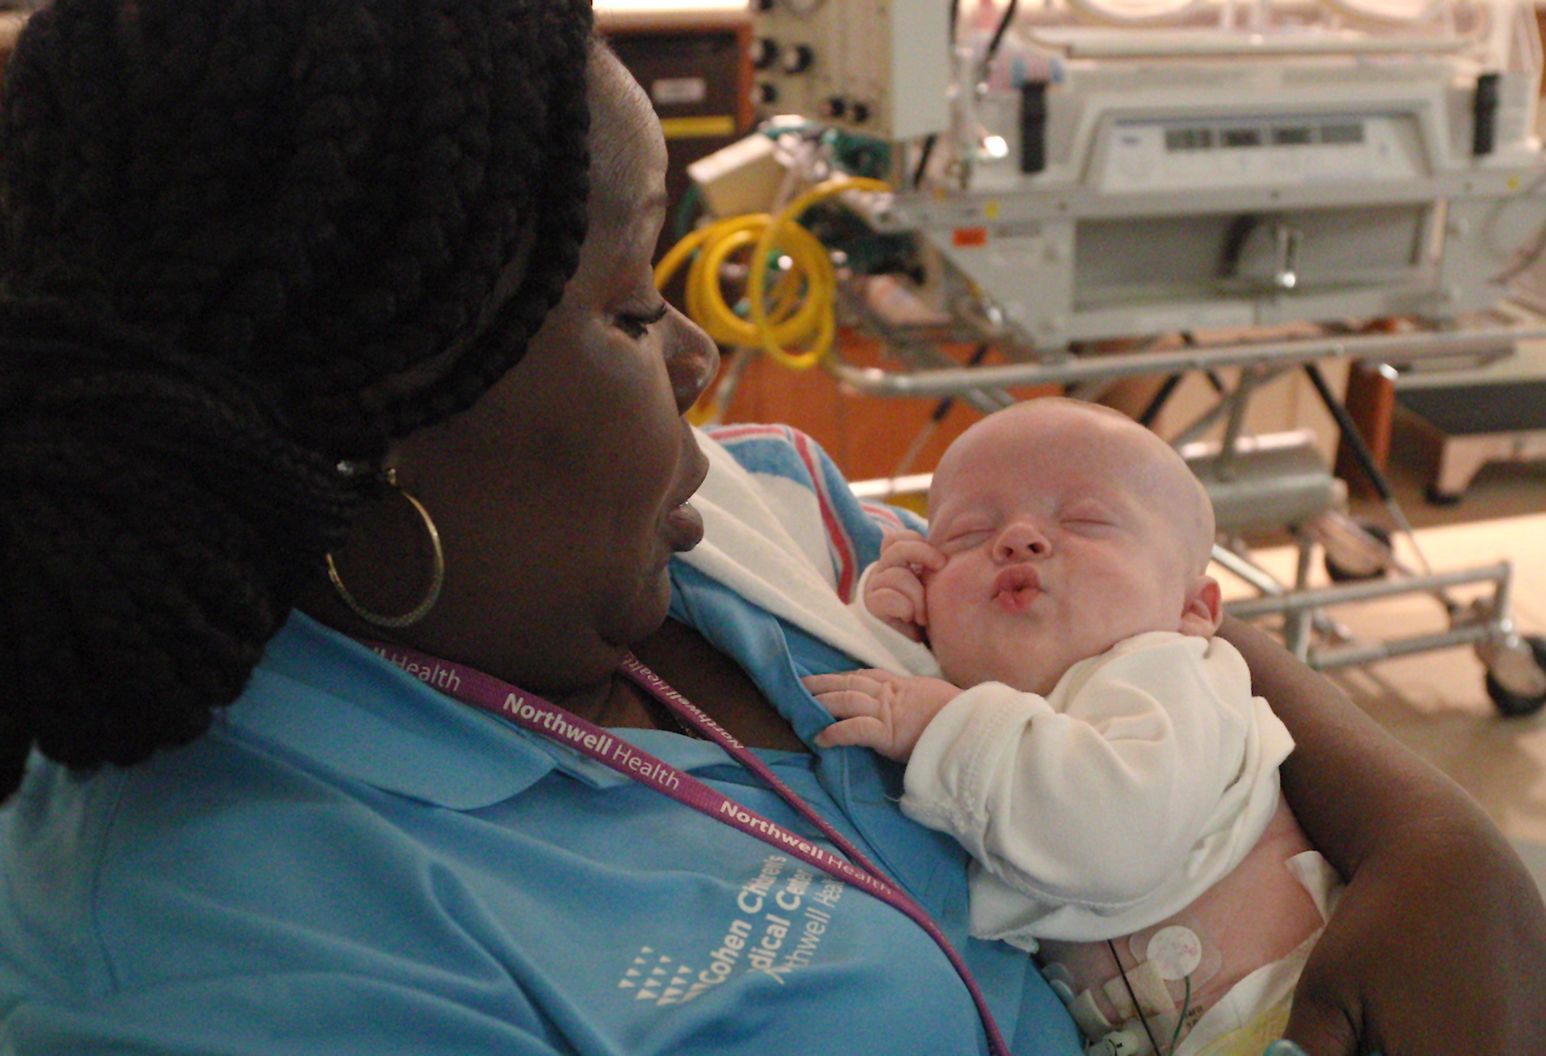 A nurse in a blue uniform holds a comfortably resting newborn baby to her chest.